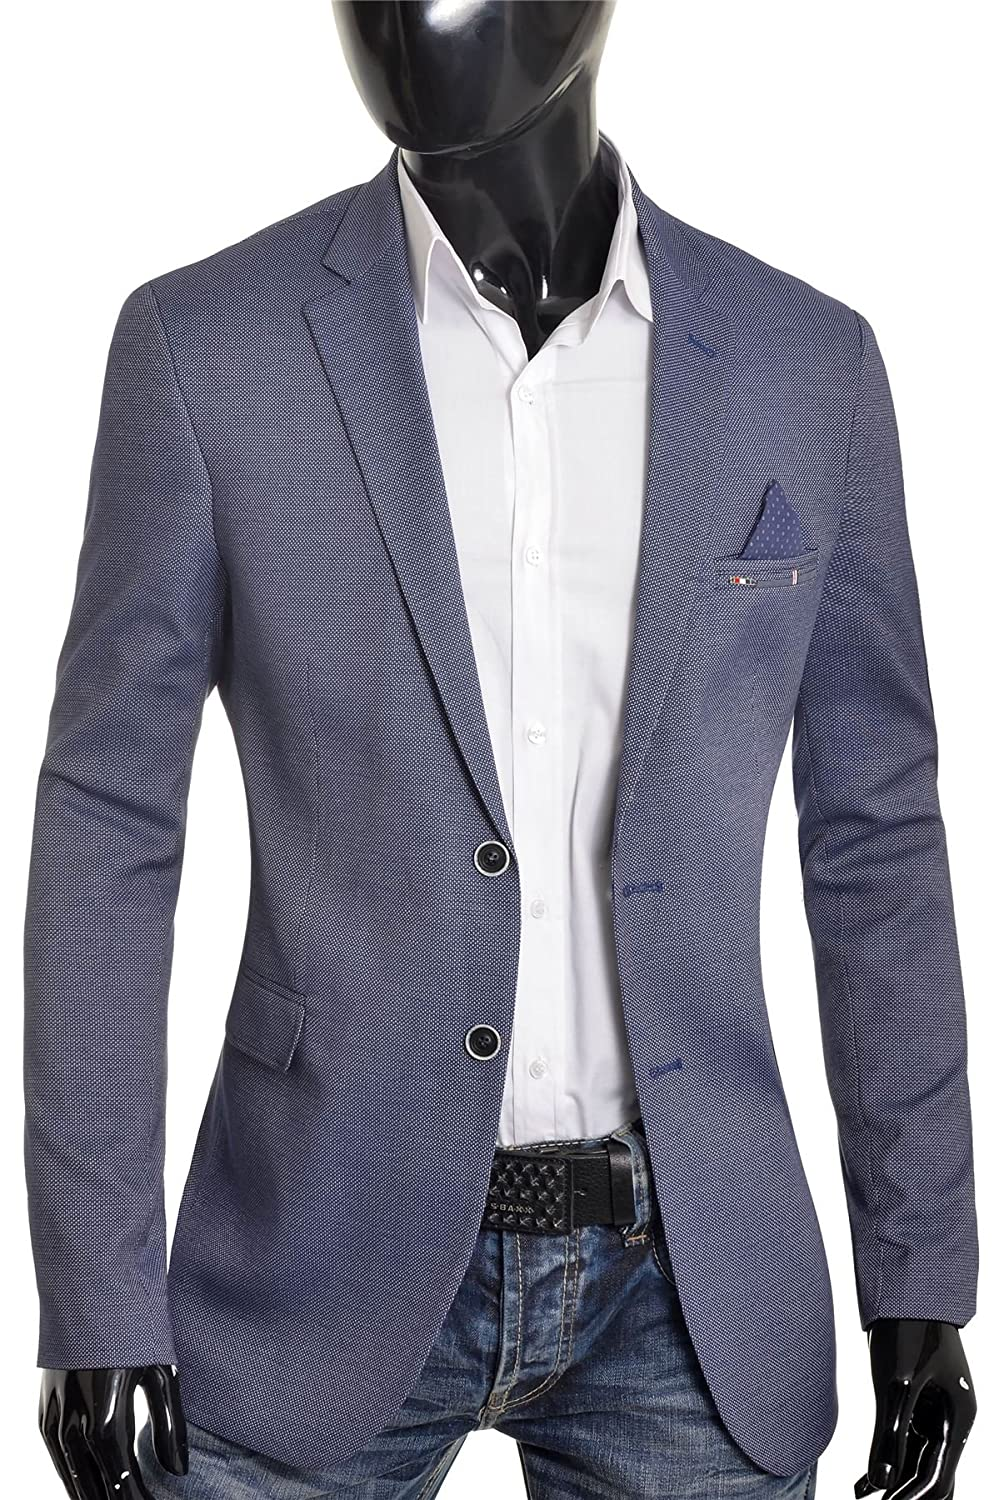 D&R Fashion Mens Classic Design Blazer Jacket Blue Casual Contrast Finish Slim Soft Cotton at Amazon Mens Clothing store: